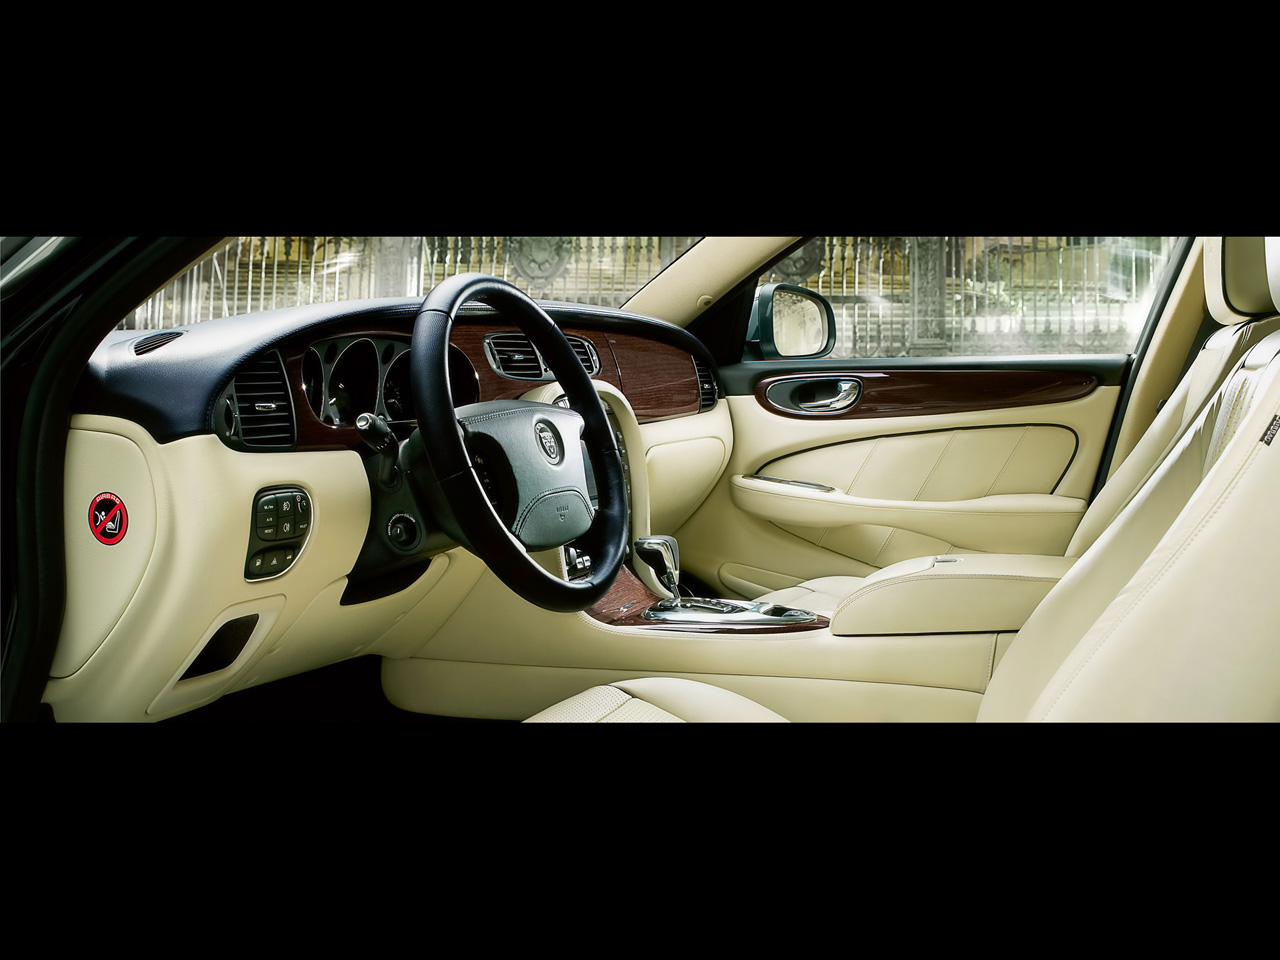 2009 Jaguar XJ Portfolio Interior Wallpaper Free For Tablet